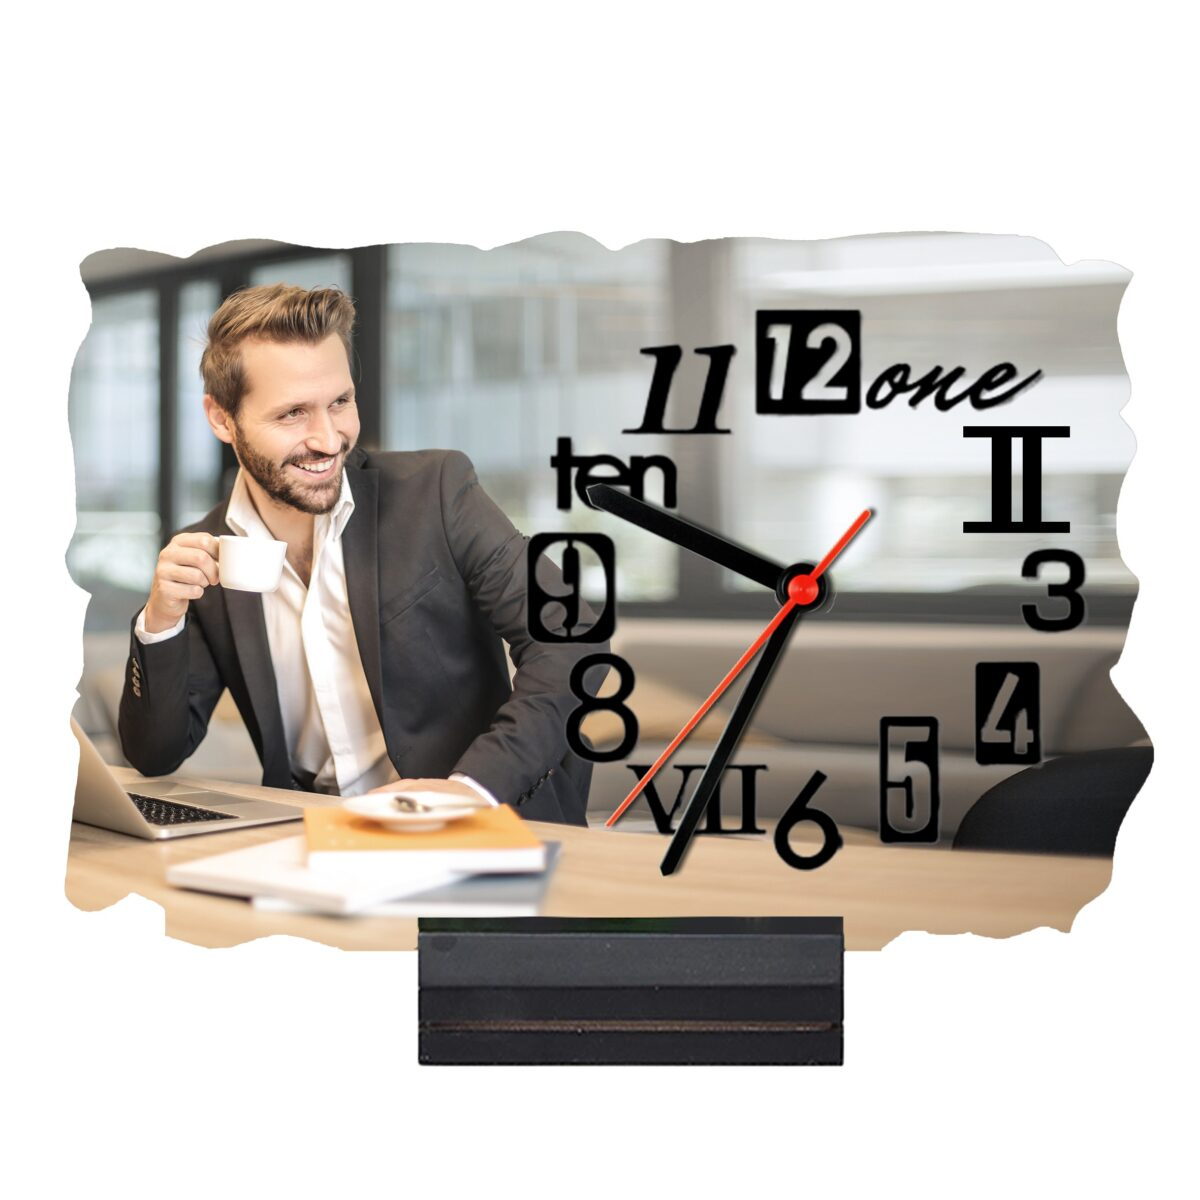 9'' x 6'' Rectangular Shape Personalized Photo Printed Wooden Table Clock (with Wooden Base)